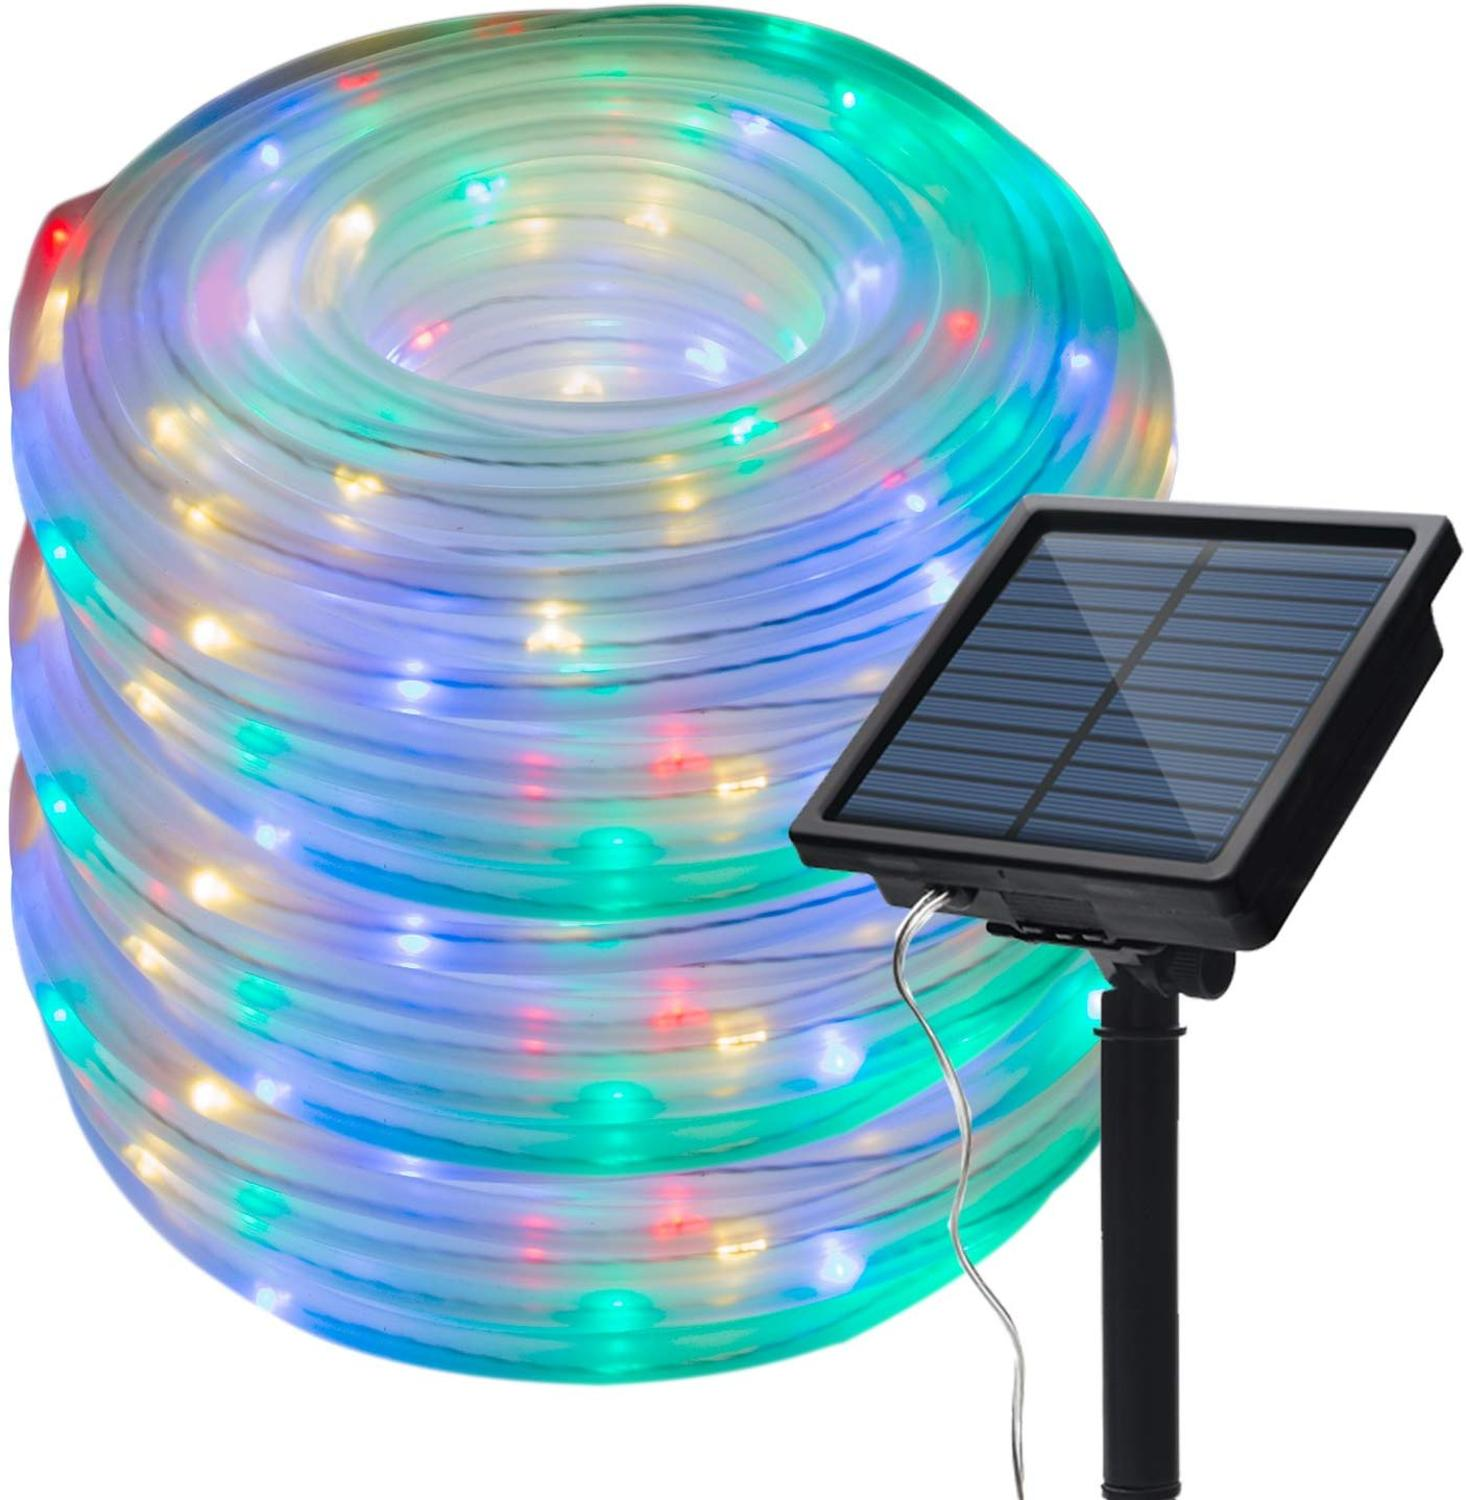 8 Modes Solar Rope Lights Outdoor String Lights 10M 20M Waterproof For Indoor Outdoor Garden Party Patio Lawn Decor Christmas